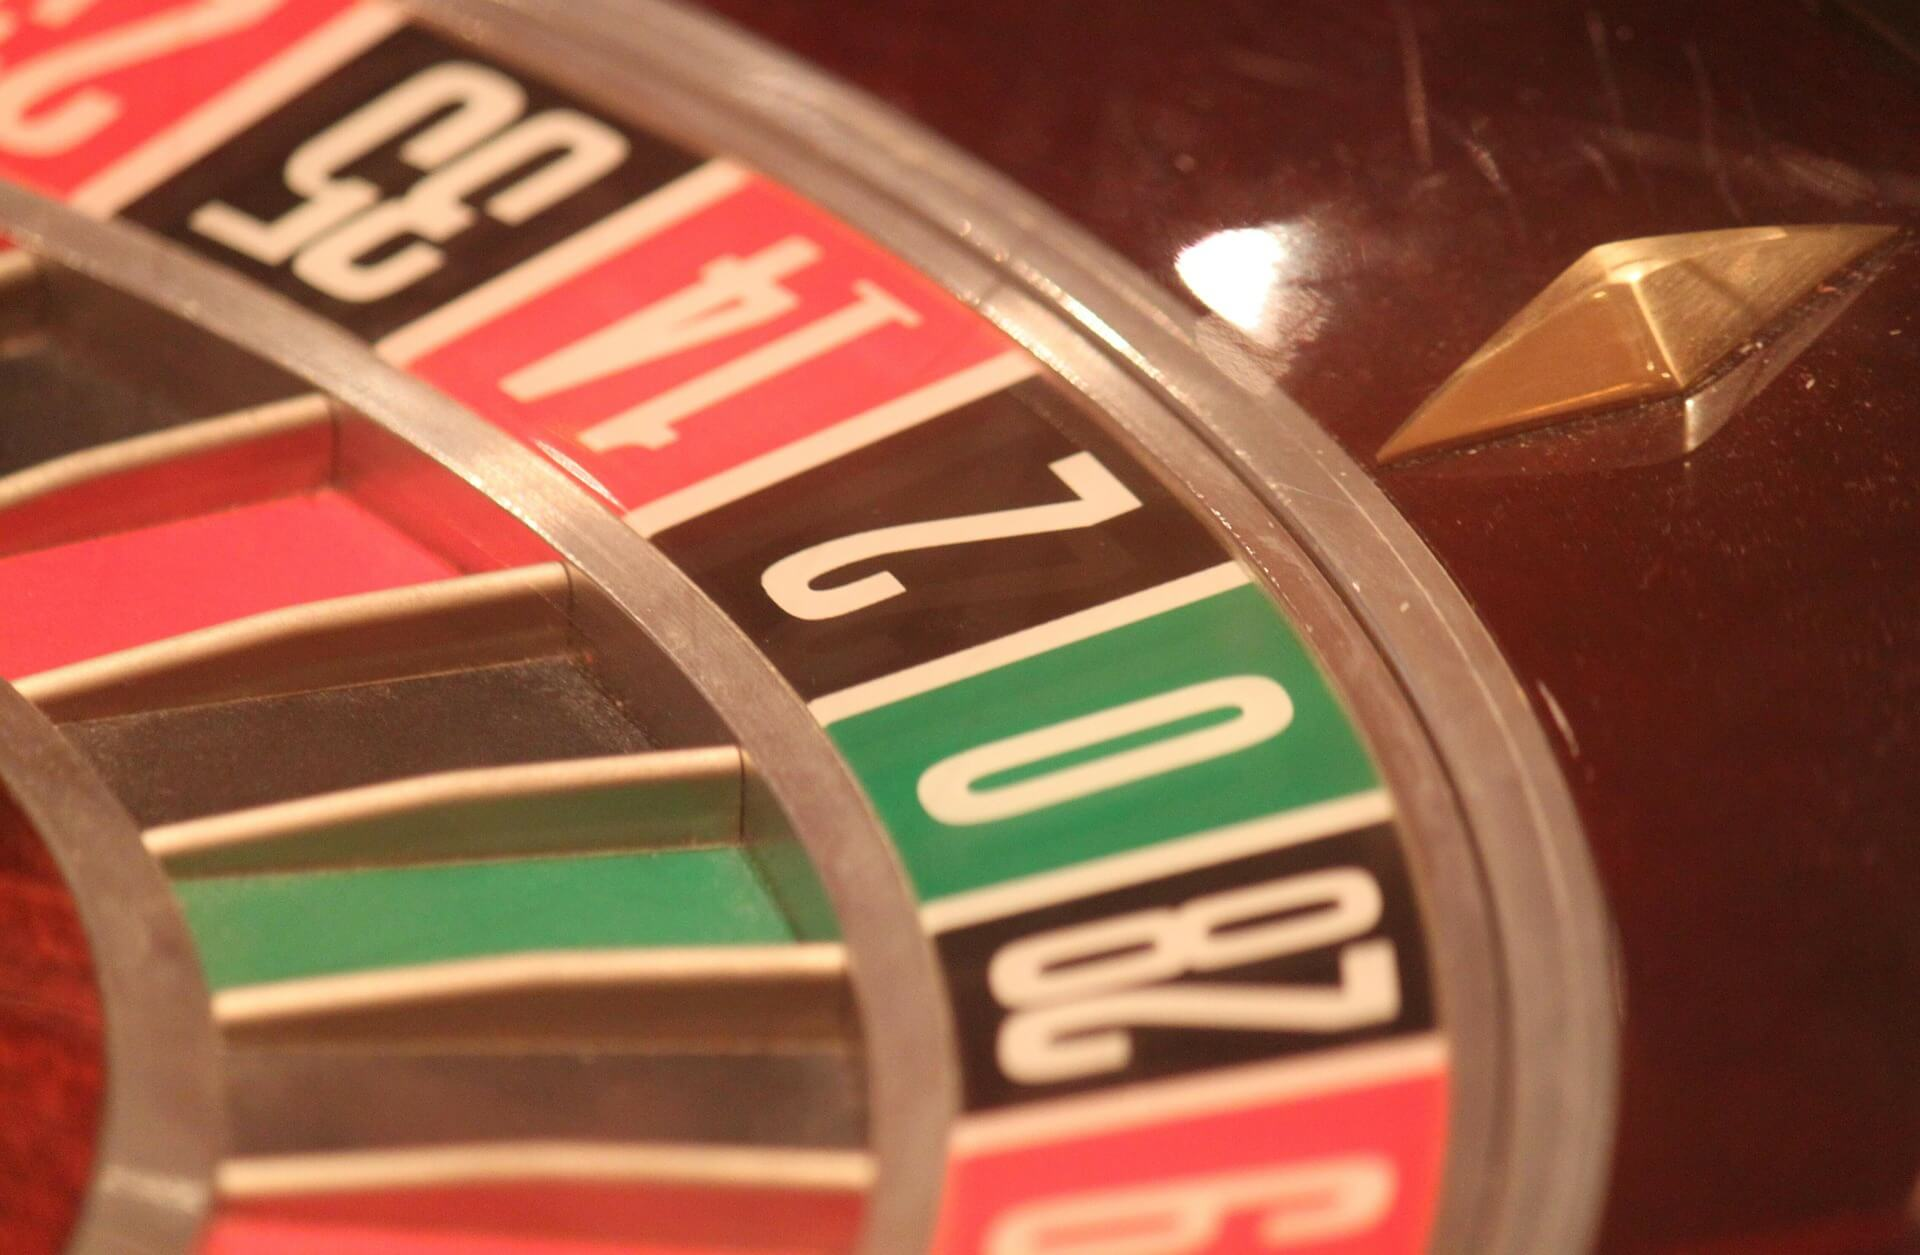 roulette_from_close_view